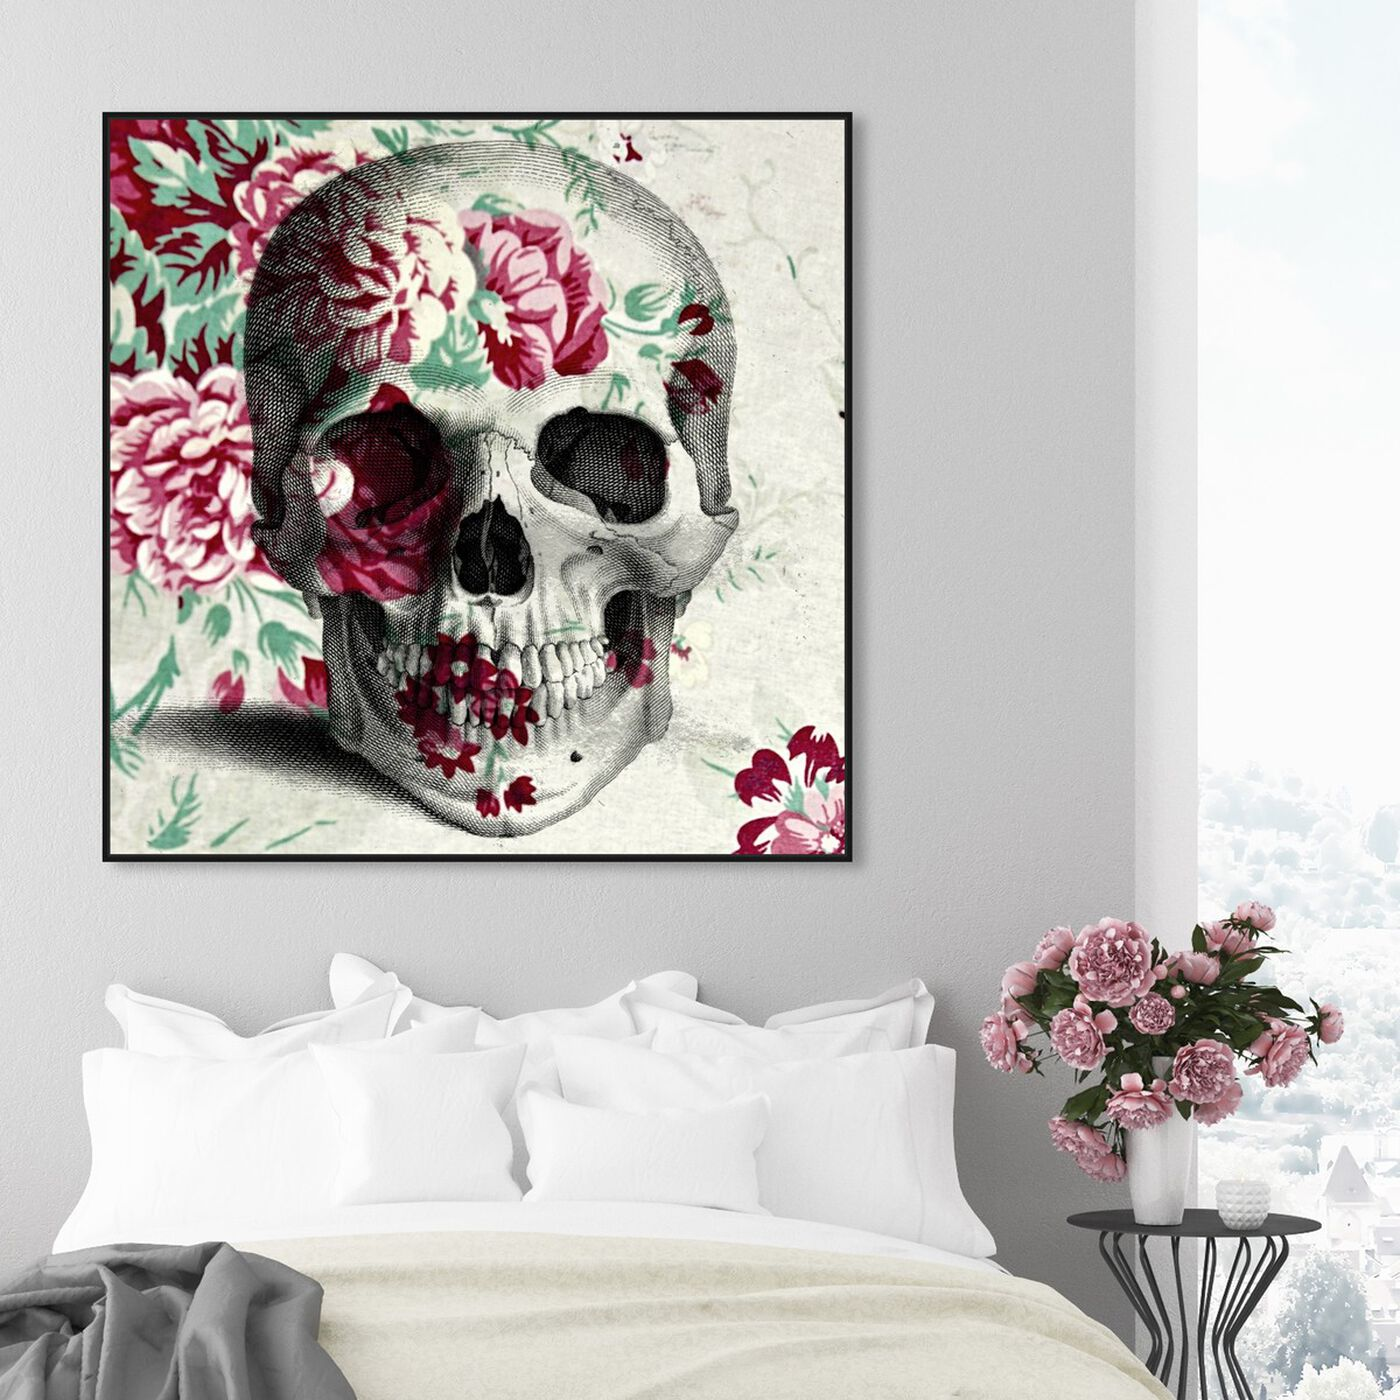 Hanging view of Spring Skull featuring symbols and objects and skull art.